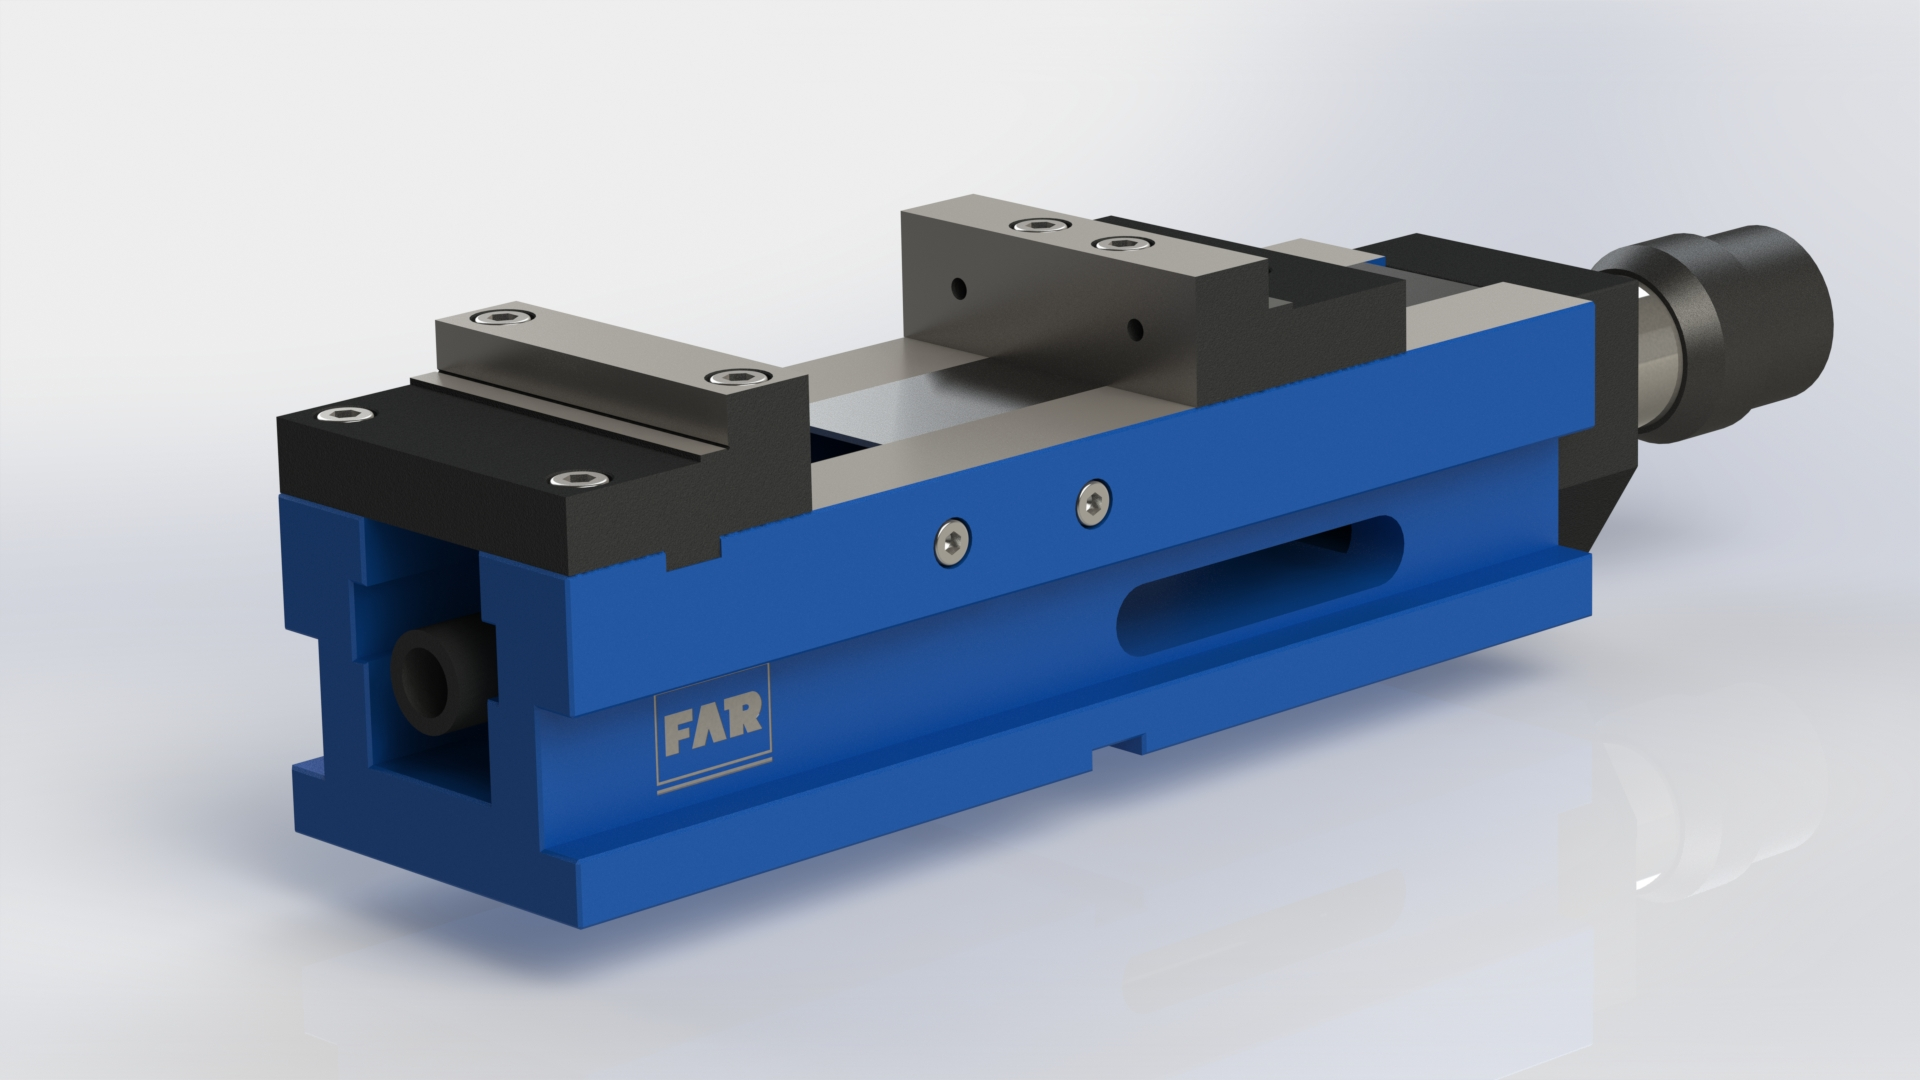 Far Vise Superiror Clamping Ability And Incresases